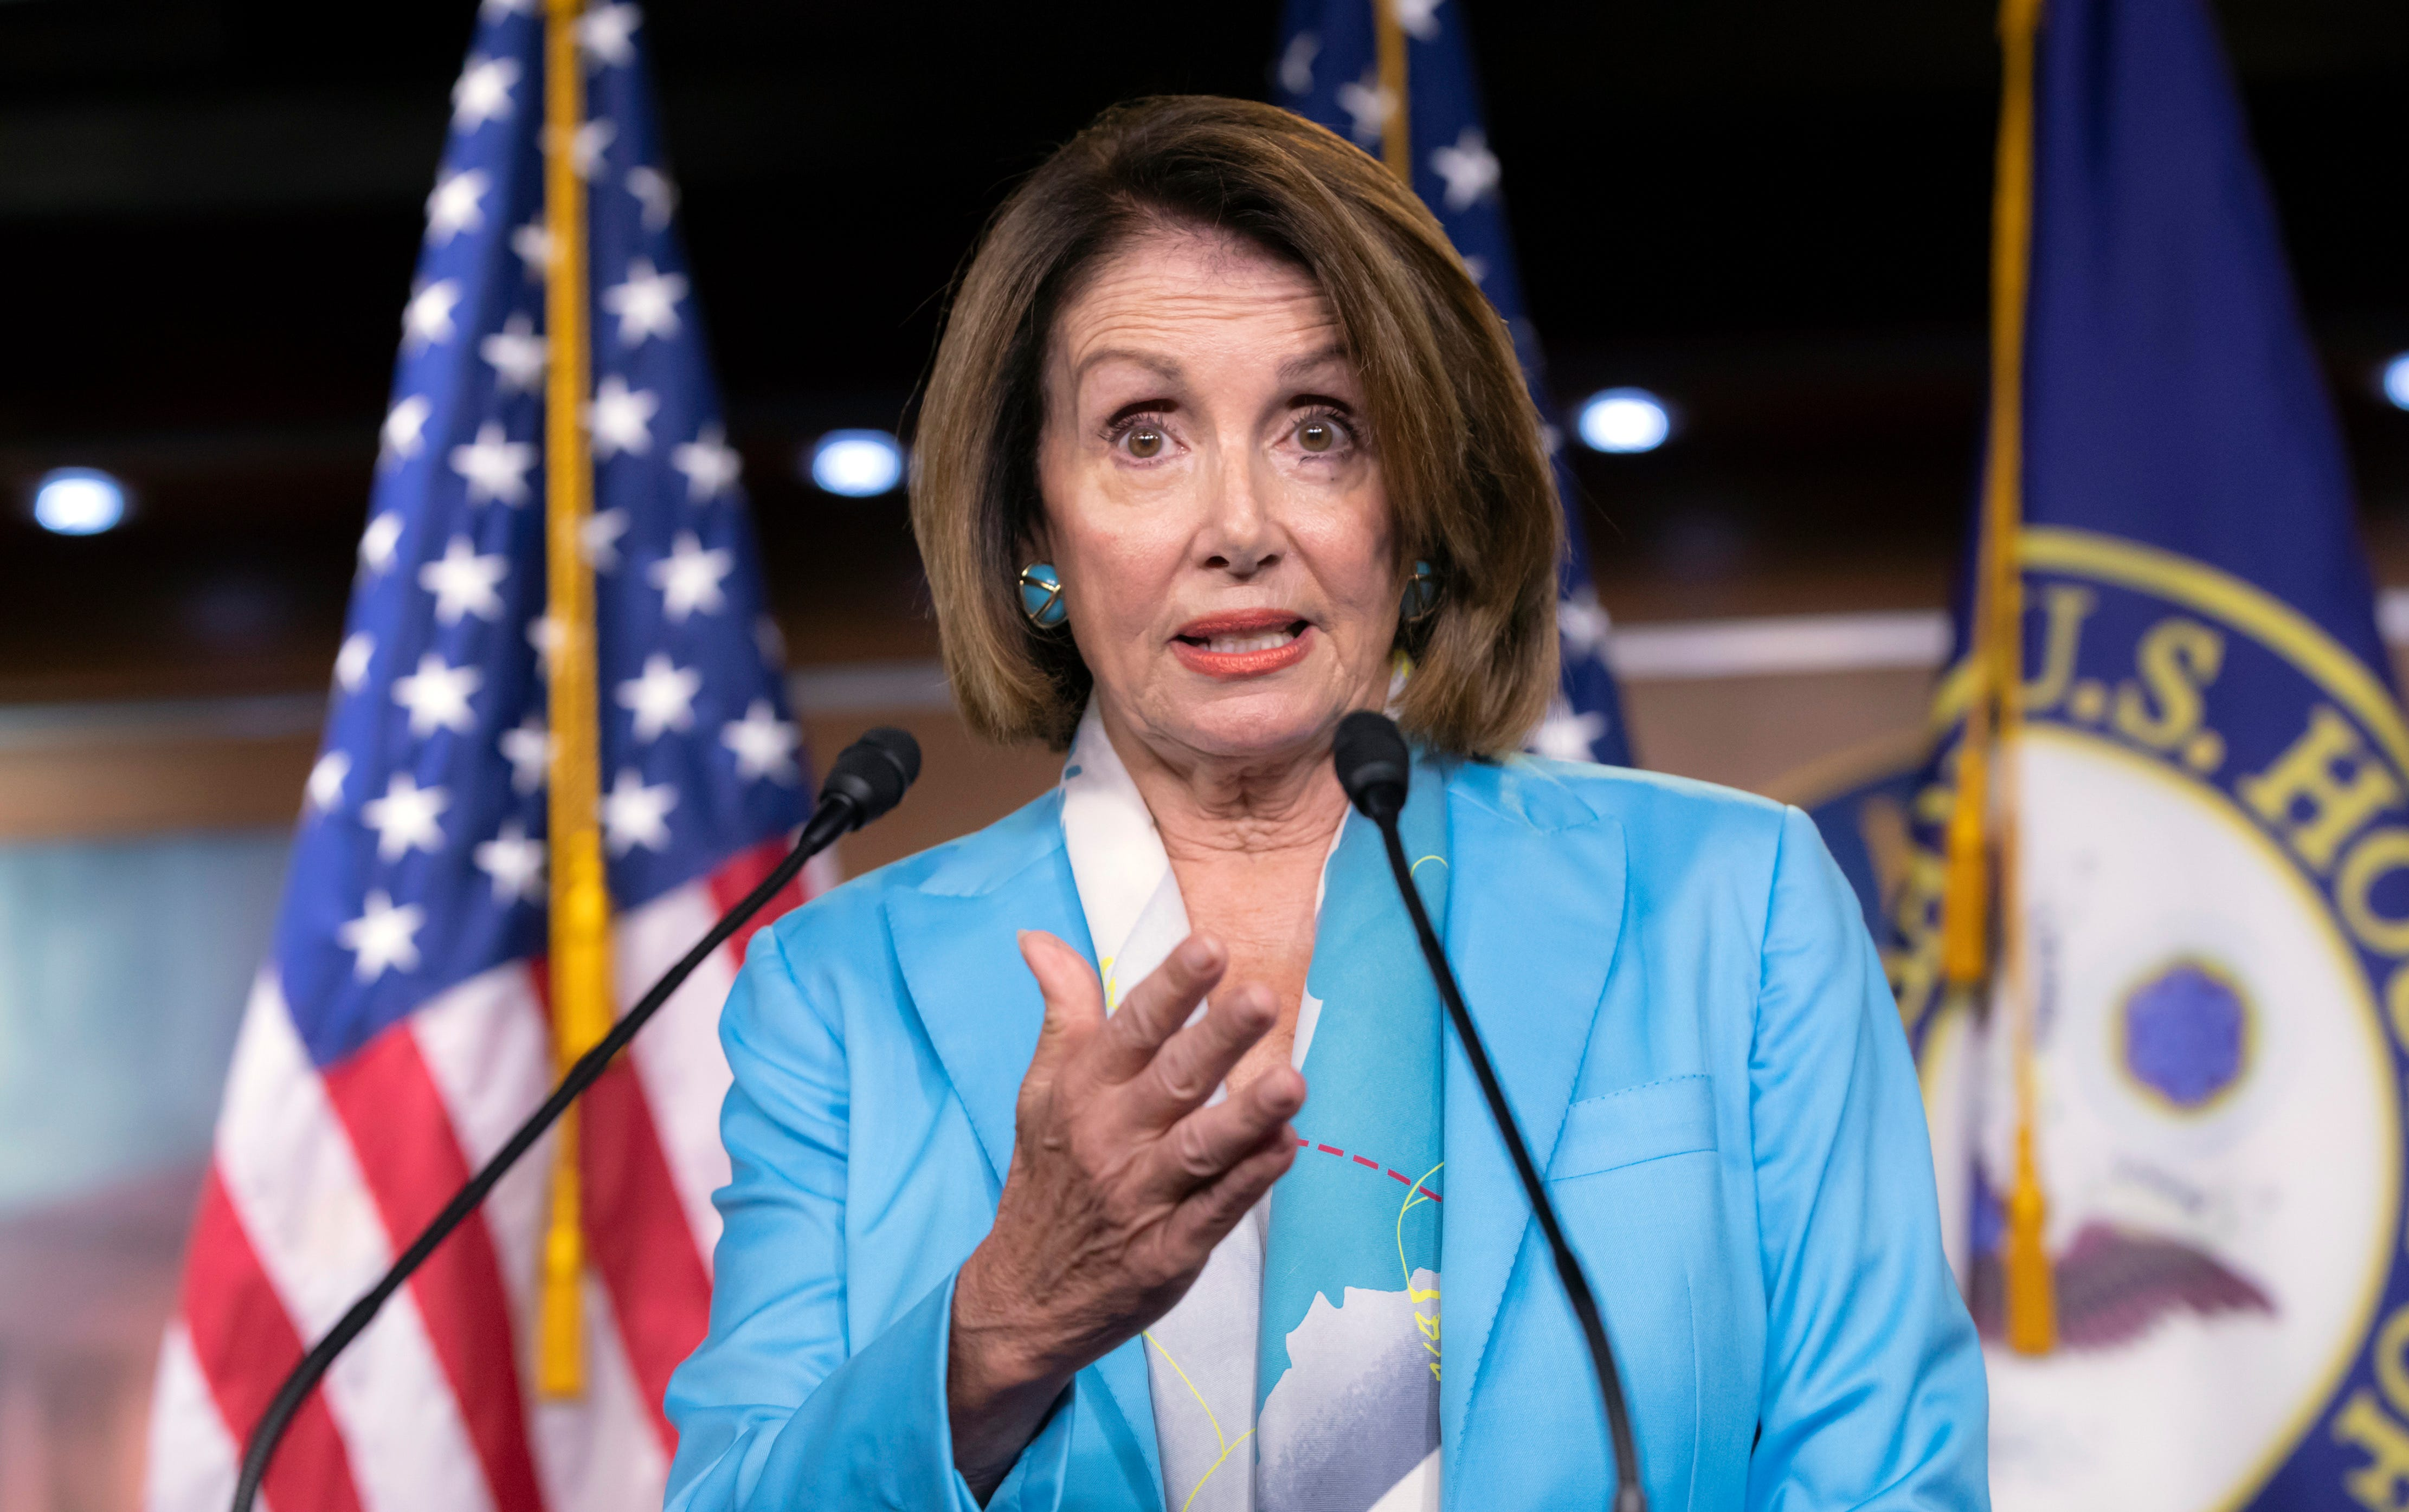 Nancy Pelosi wants to be House speaker again. Can she overcome opposition in her own party?